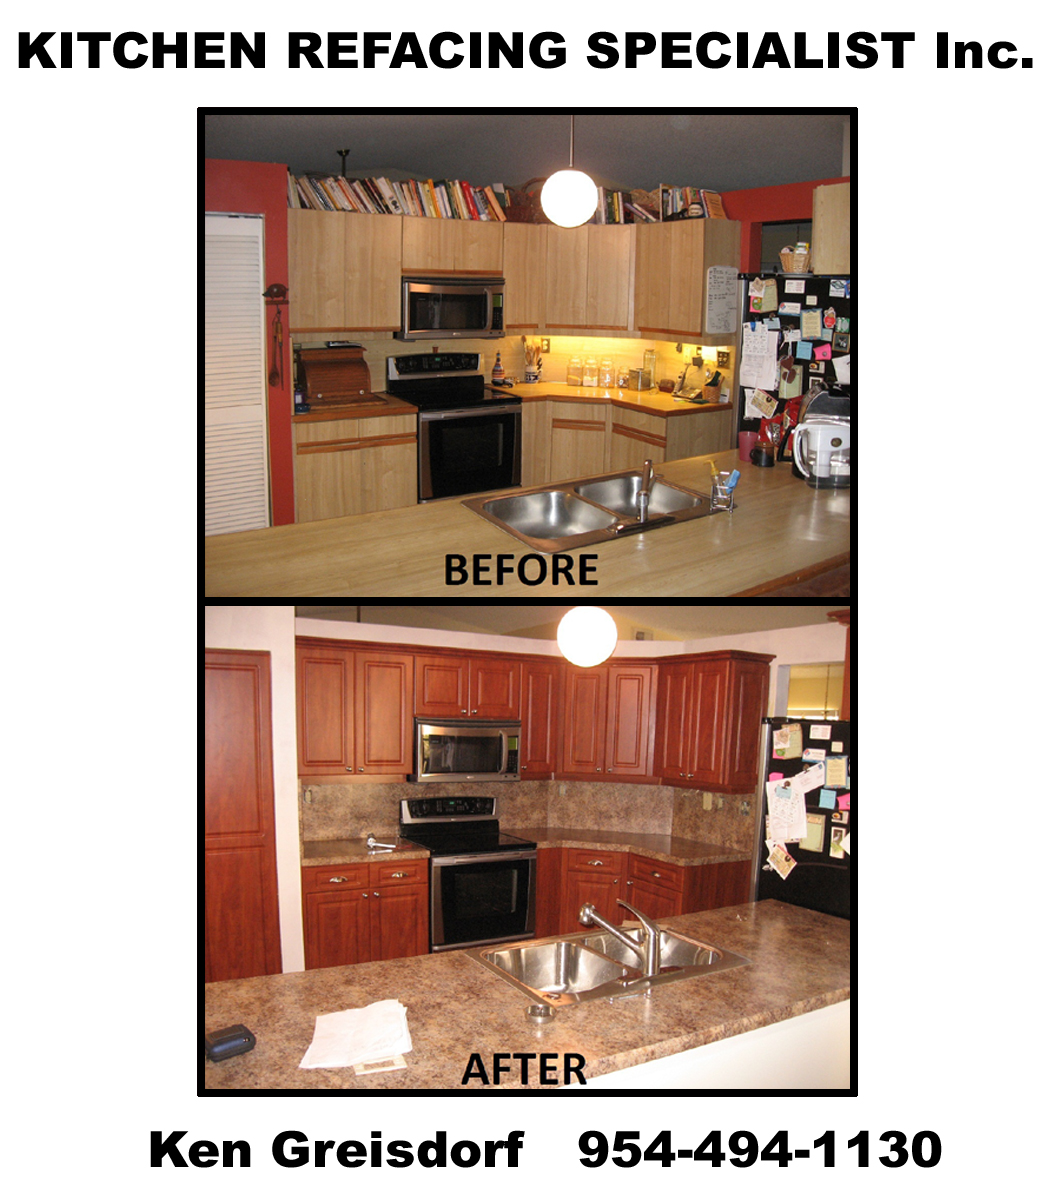 Before And After Pictures Refacing Cabinets: Before & After Pictures Of Kitchen Cabinet Refacing. Call